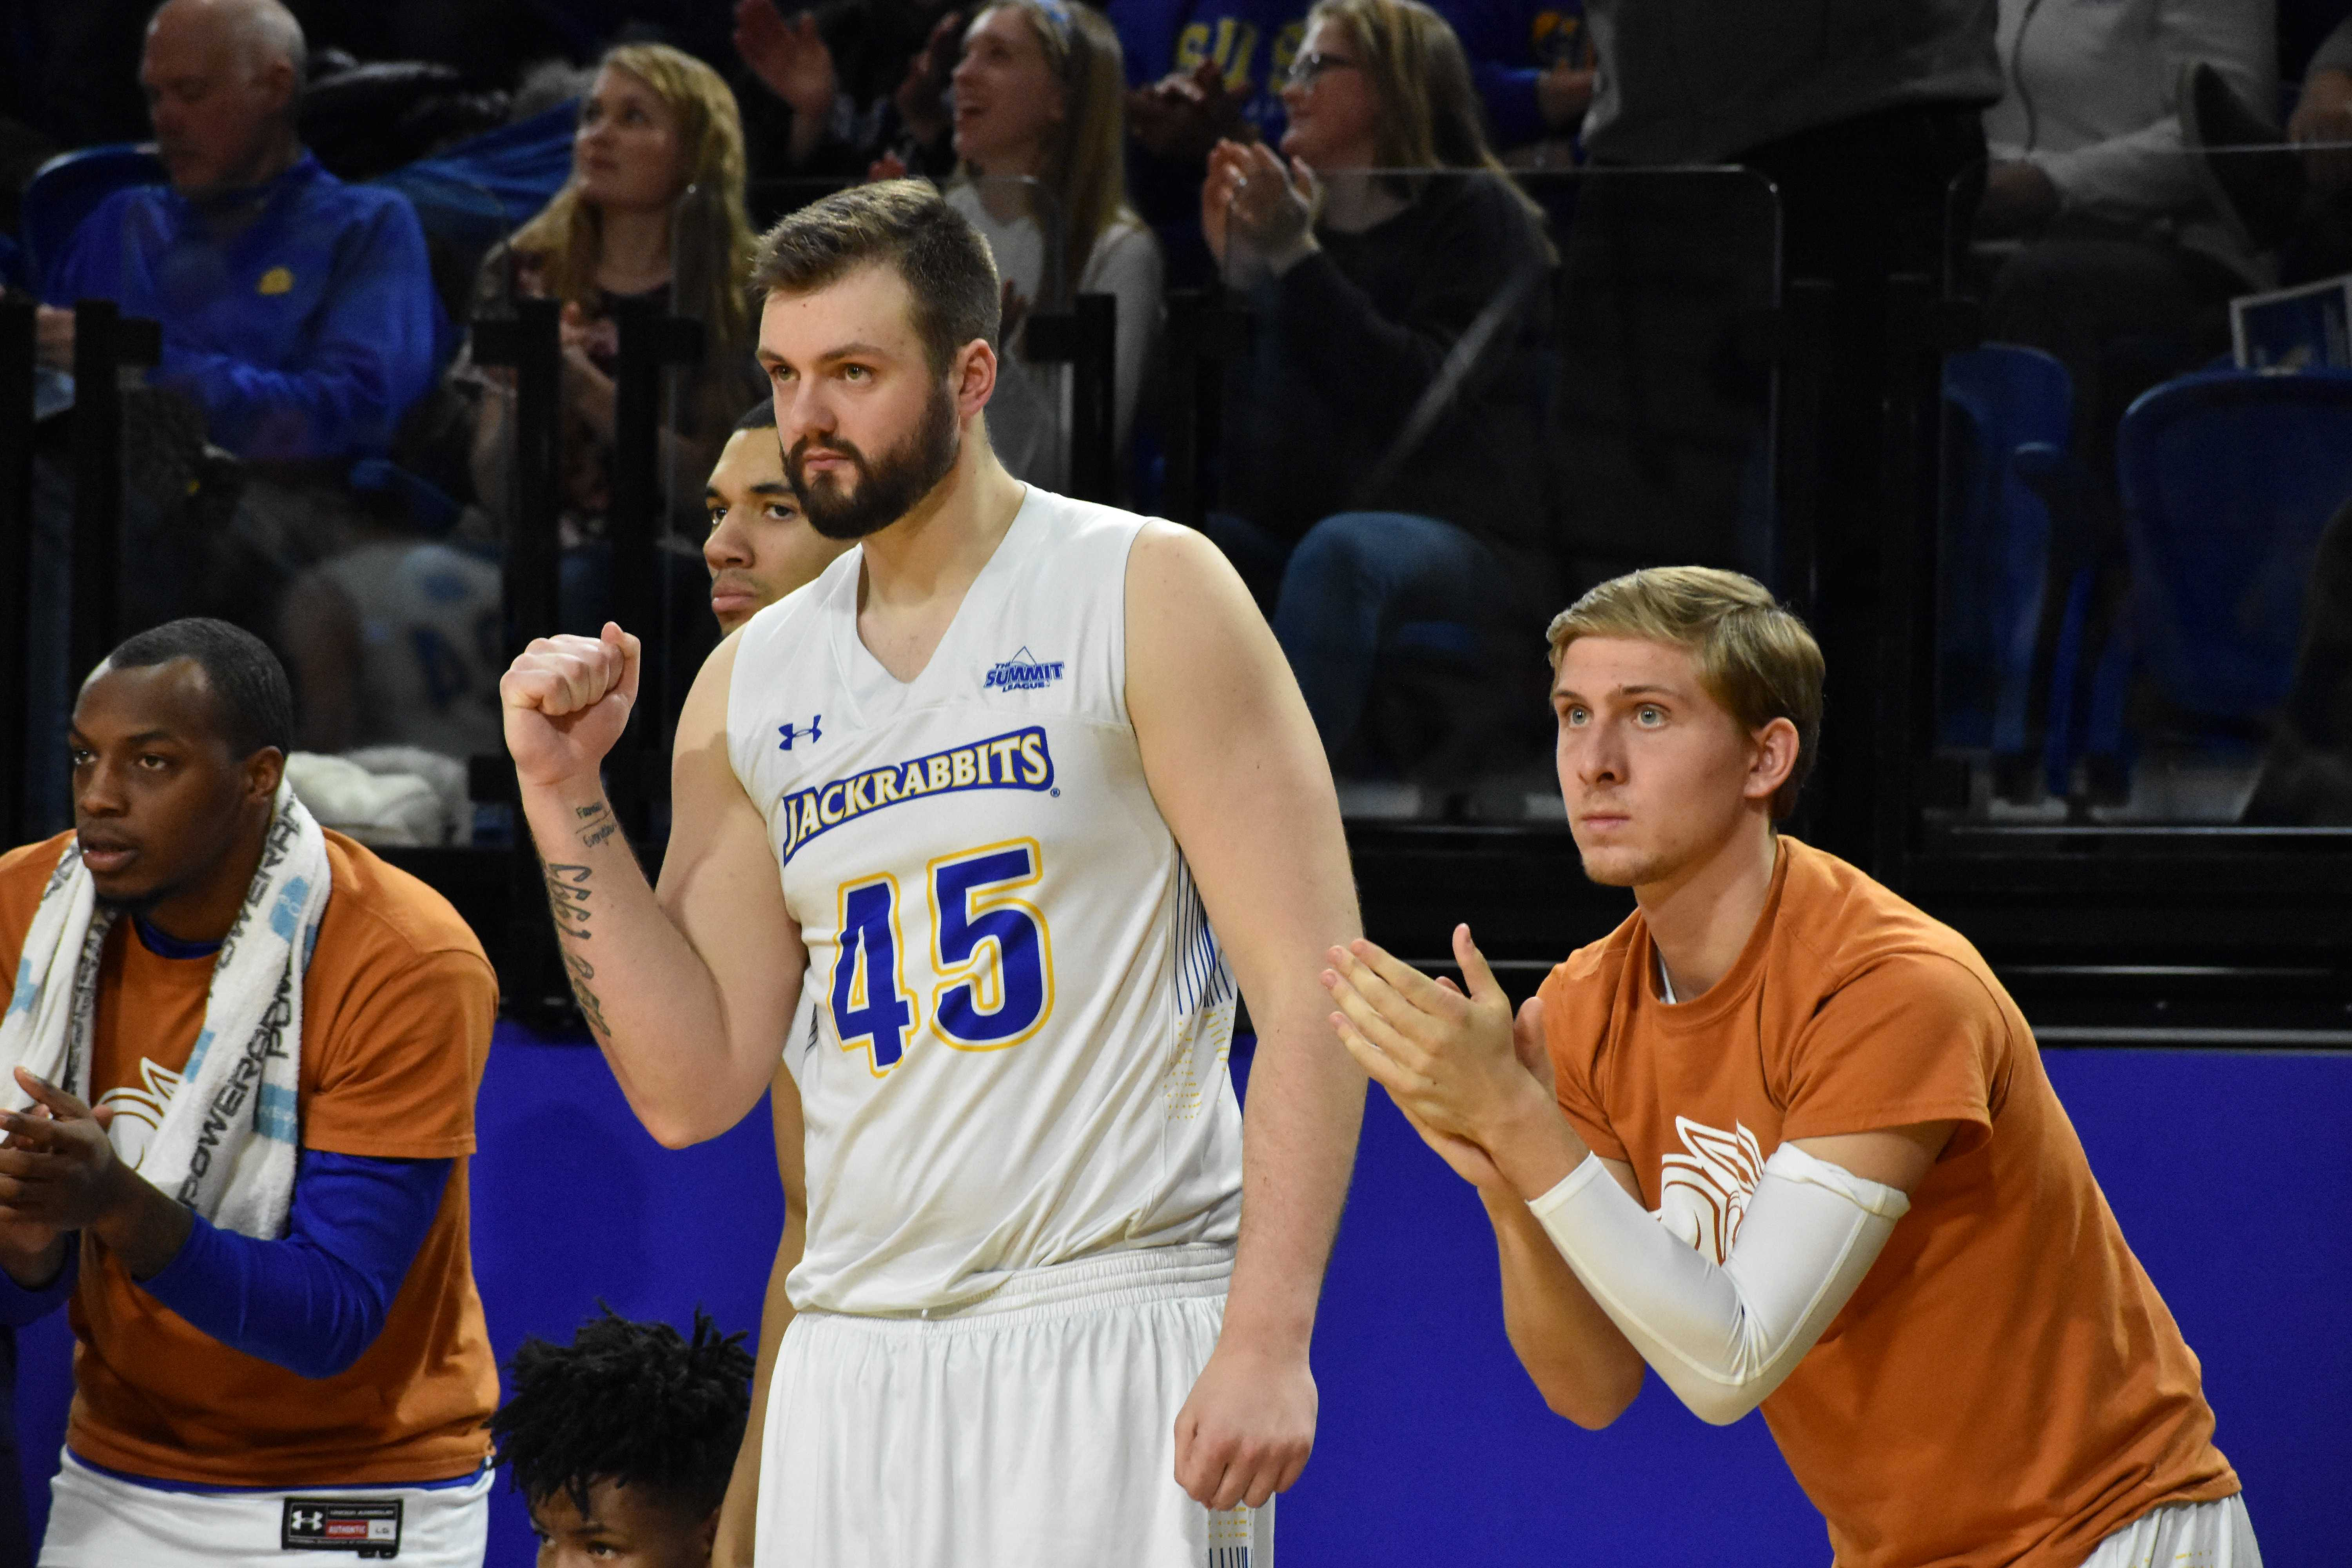 ABBY FULLENKAMP Senior forward Ian Theisen (45) and sophomore guard Beau Brown (15) cheer on their teammates during the second half of the game against USD Feb. 22. The Jacks won 76-72. The men are the first seed for the Summit League Tournament.